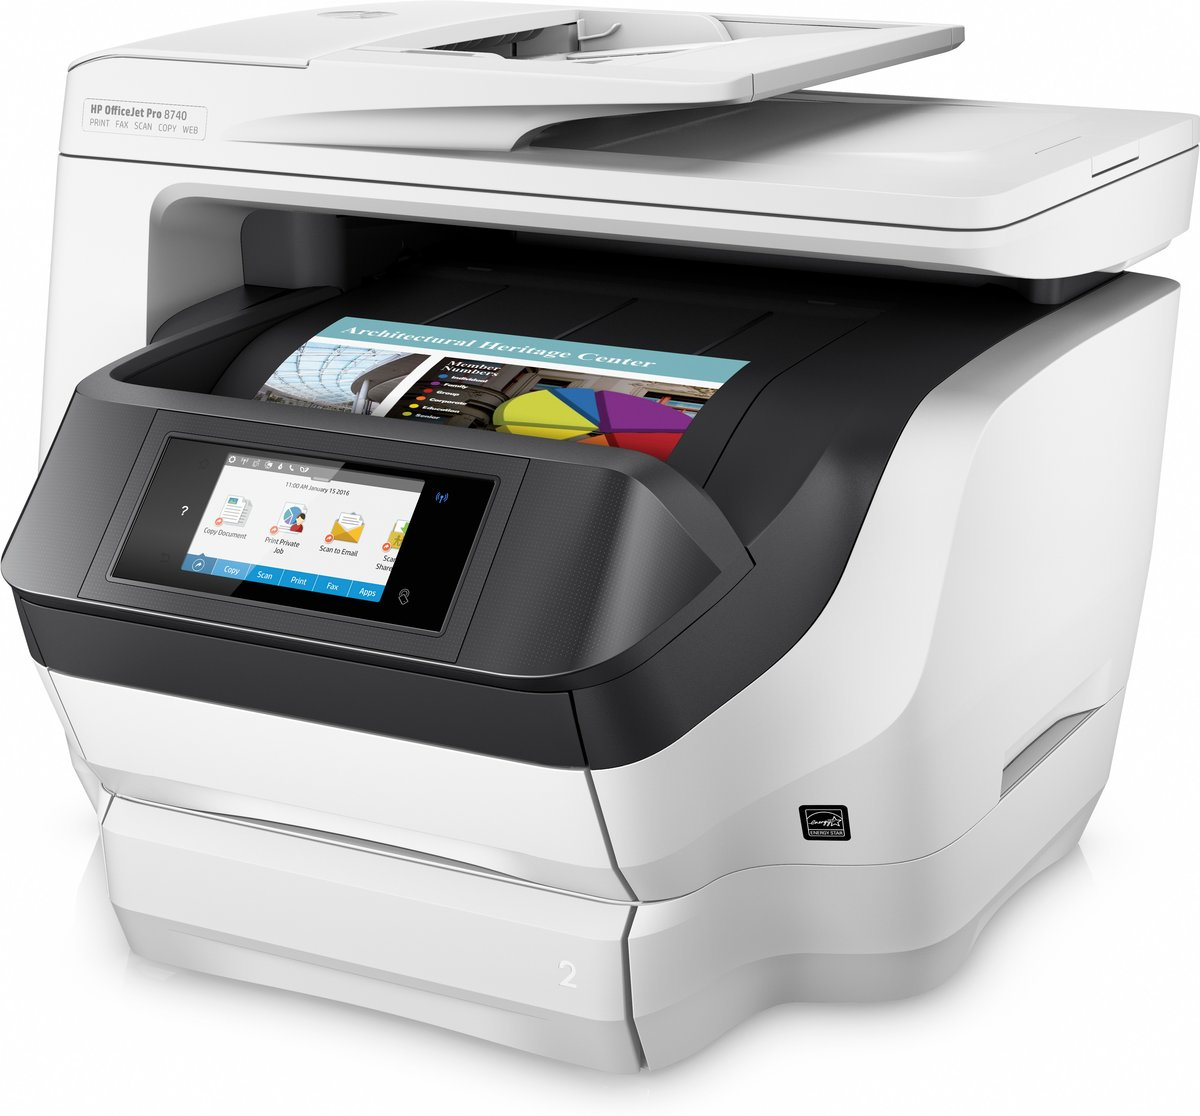 Office depot color printing costs - Hp Officejet Pro 8740 All In One Wireless Printer With Mobile Printing K7s42a By Office Depot Officemax